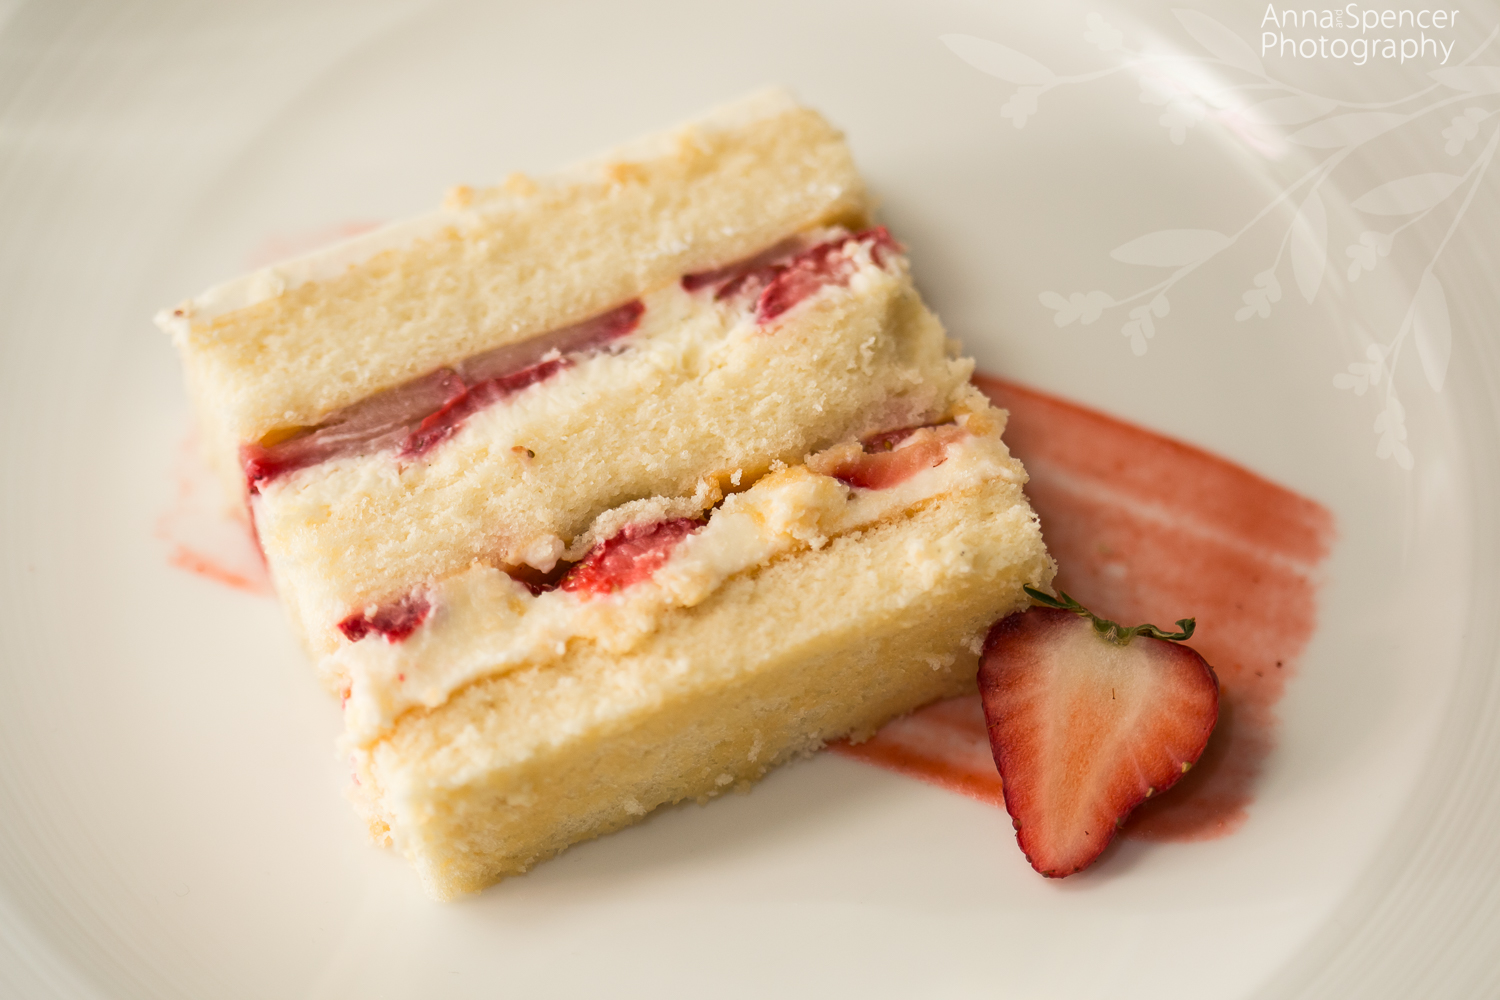 Slice of strawberry wedding cake